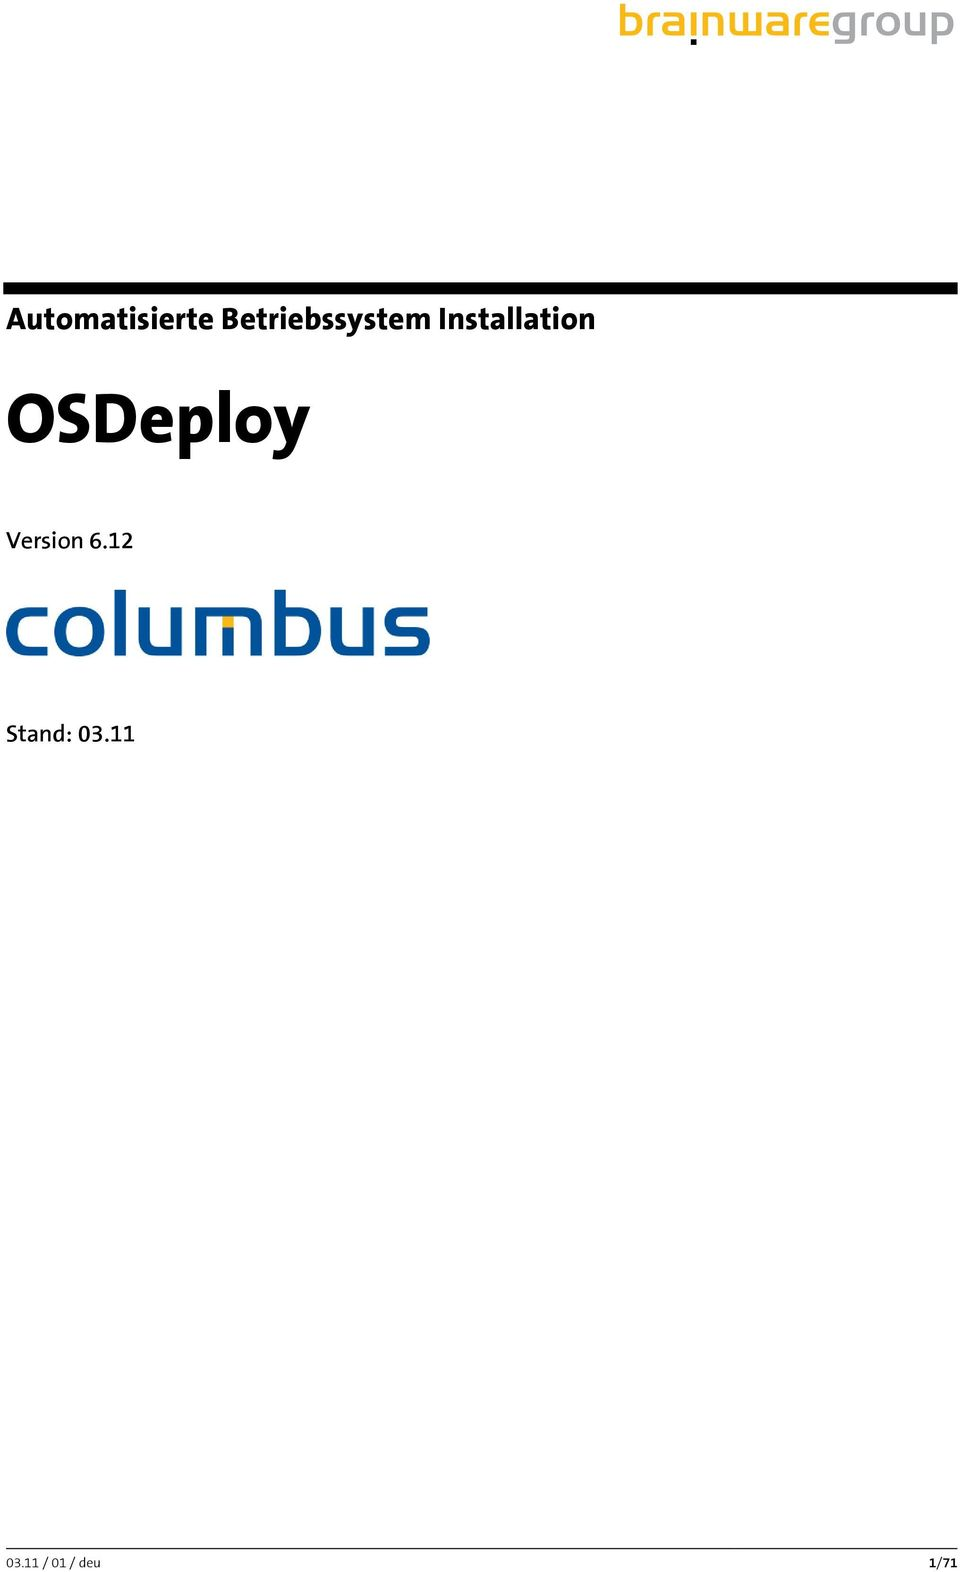 Installation OSDeploy